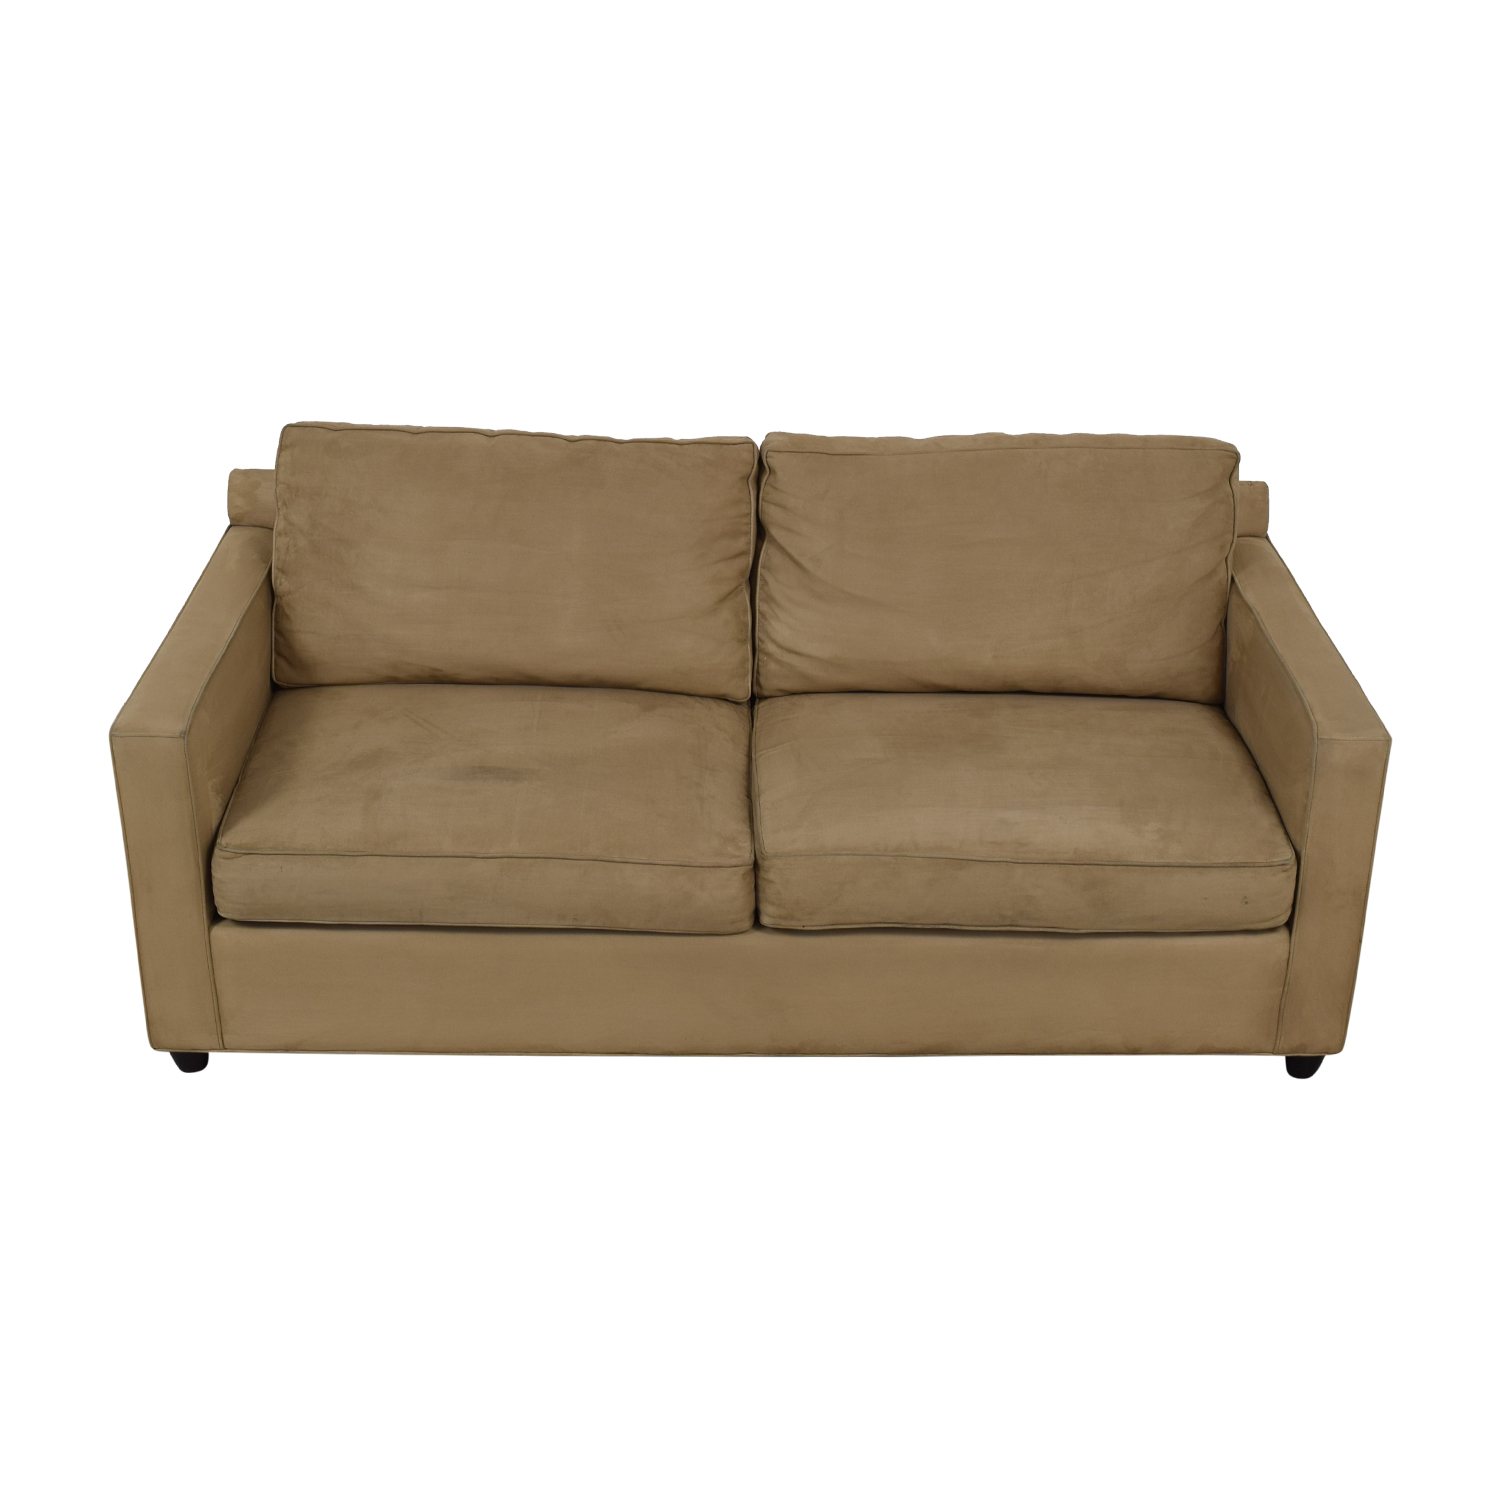 Crate & Barrel Beige Sofa Crate & Barrel